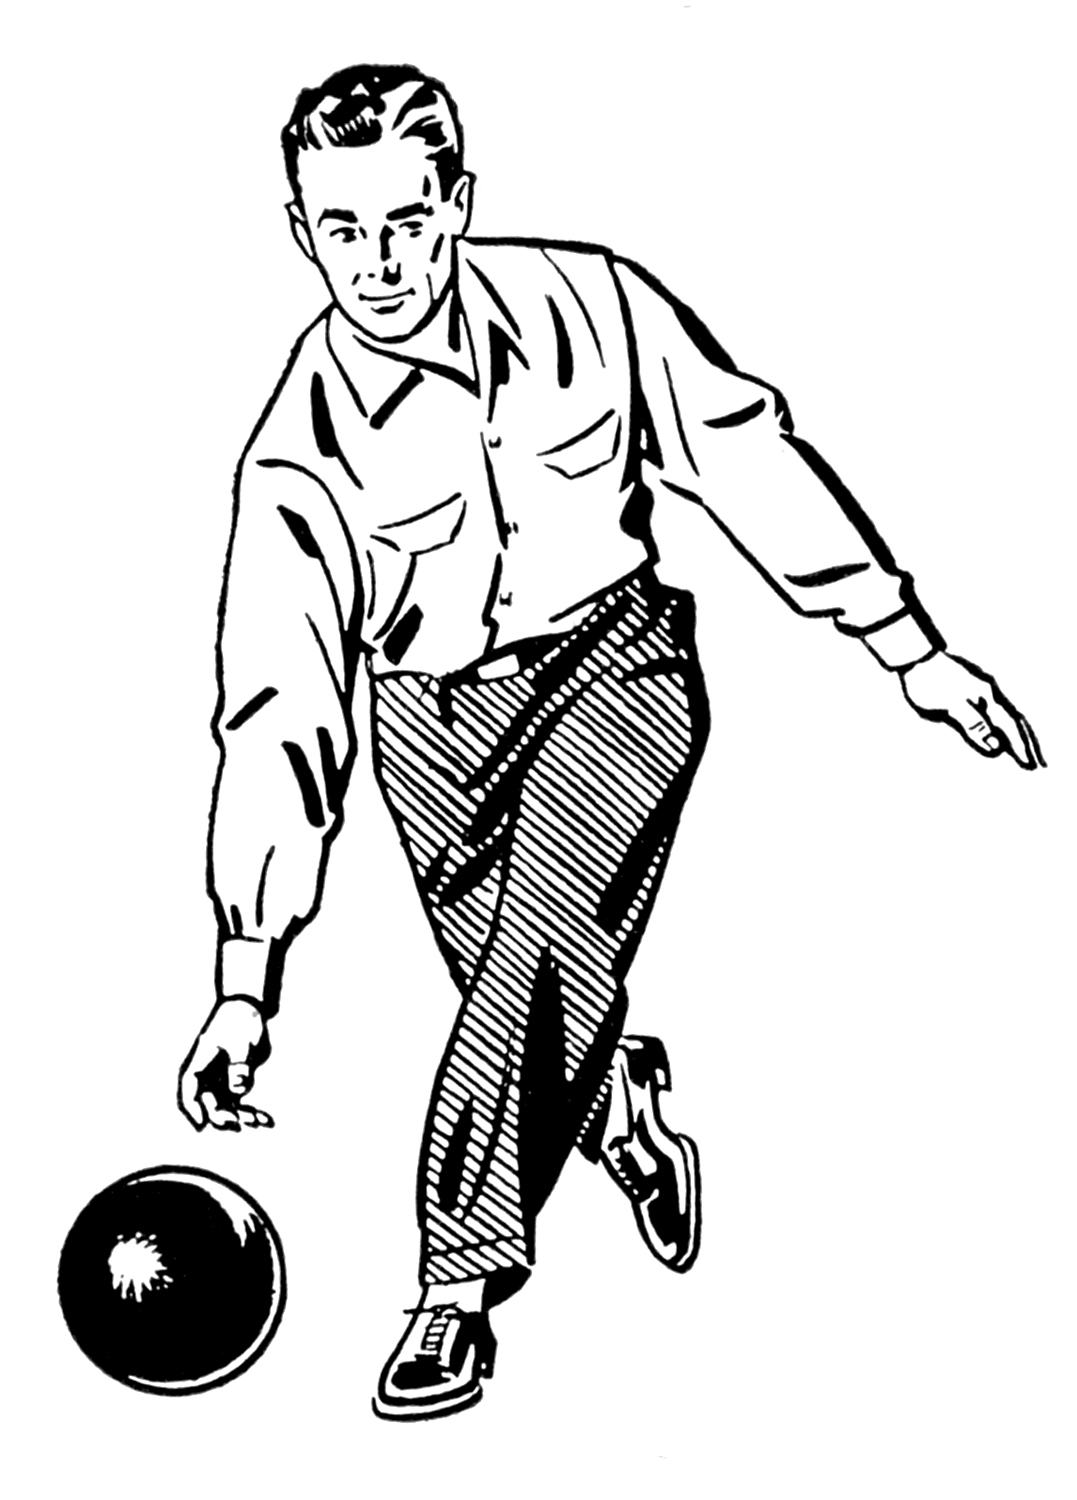 Free Bowling Silhouettes Cliparts Download Free Clip Art